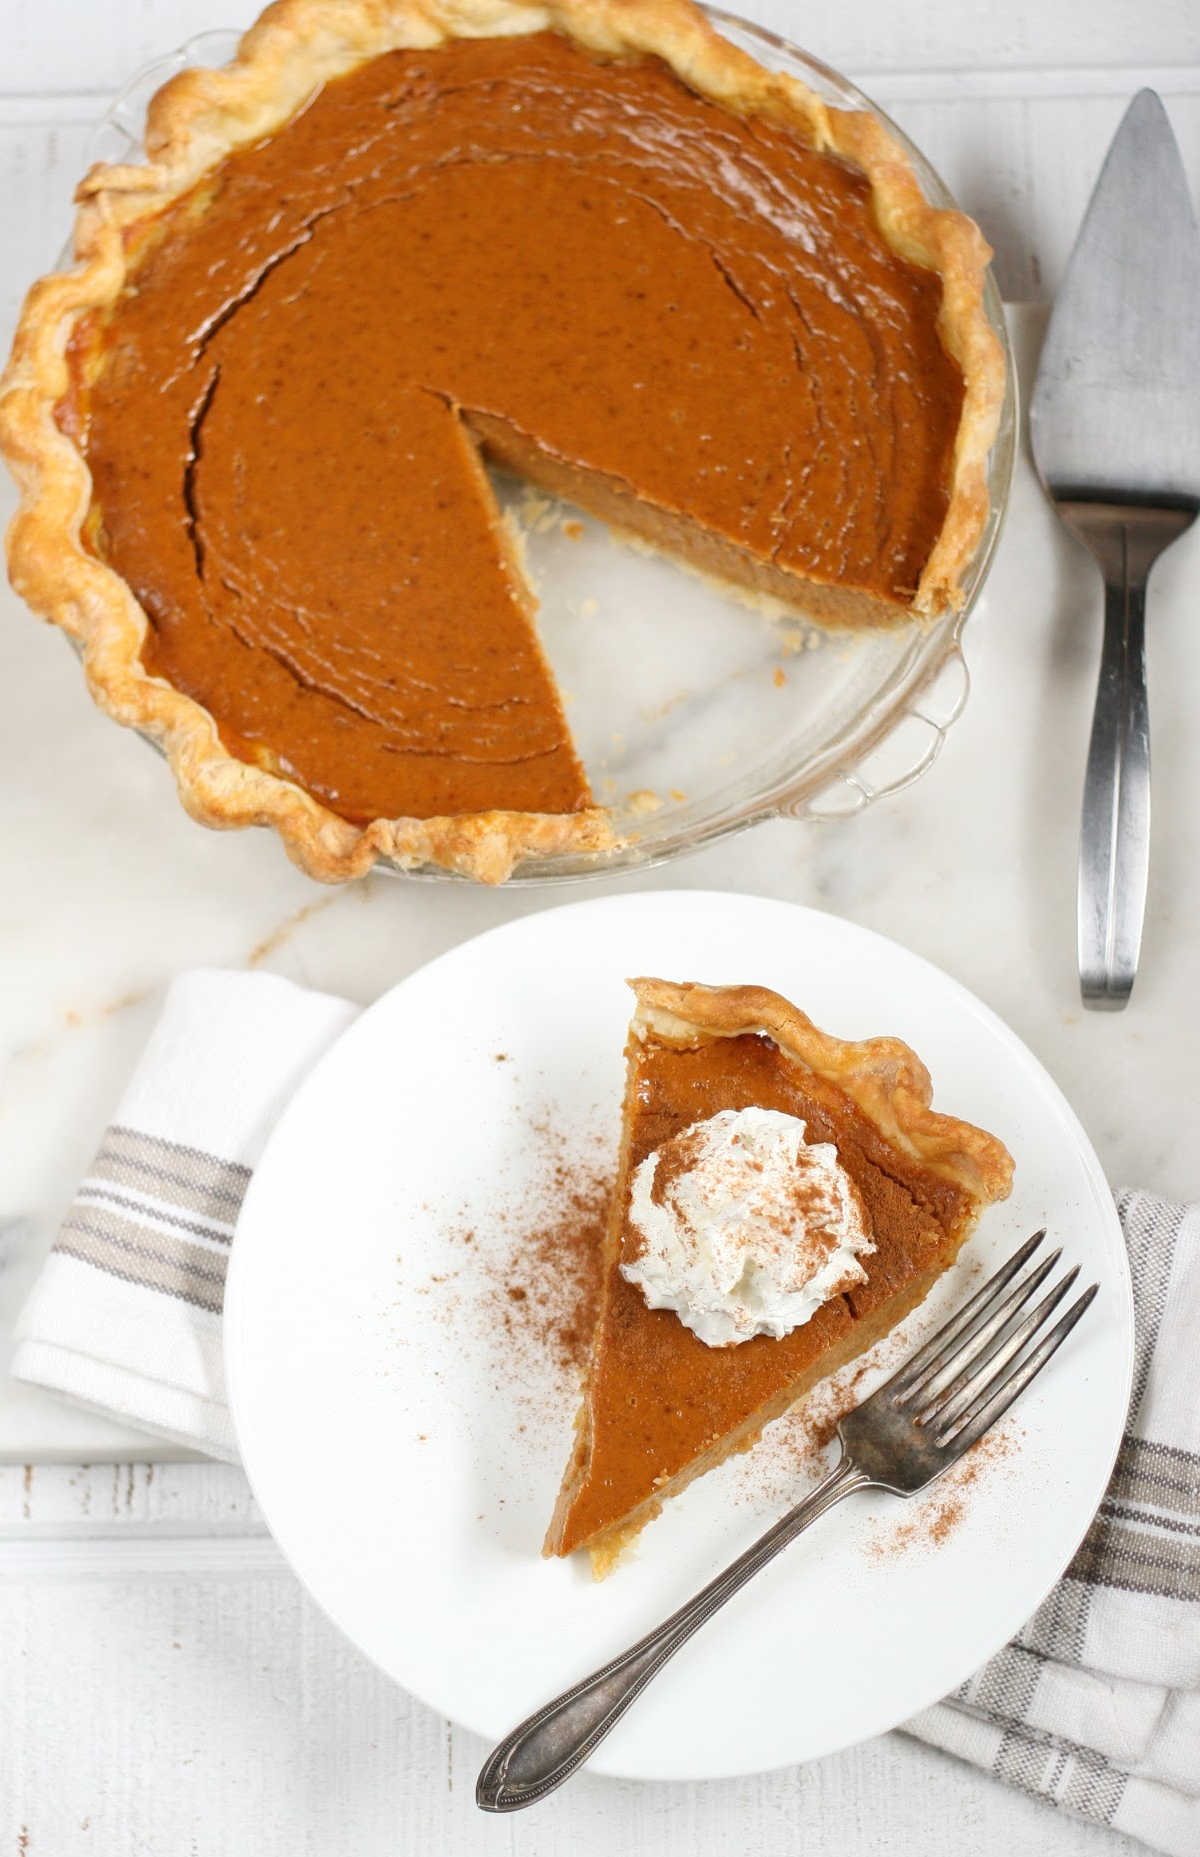 slice of pumpkin pie on small white plate, full pie background.